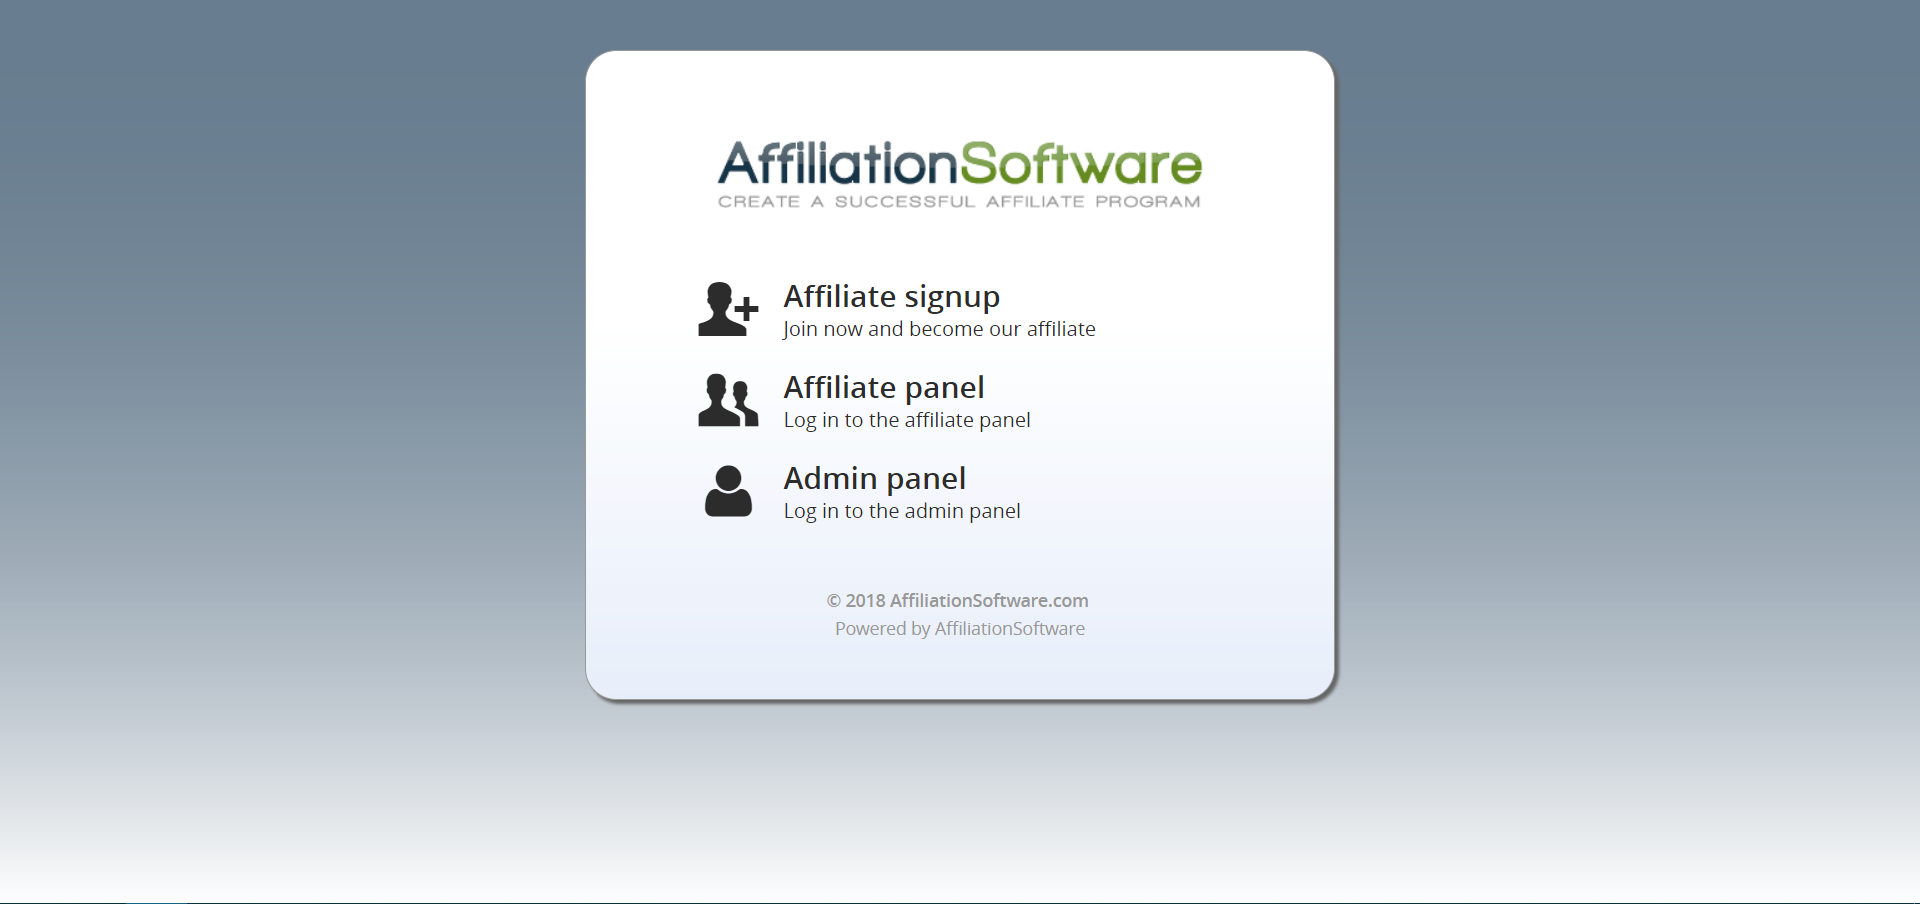 Homepage of AffiliationSoftware